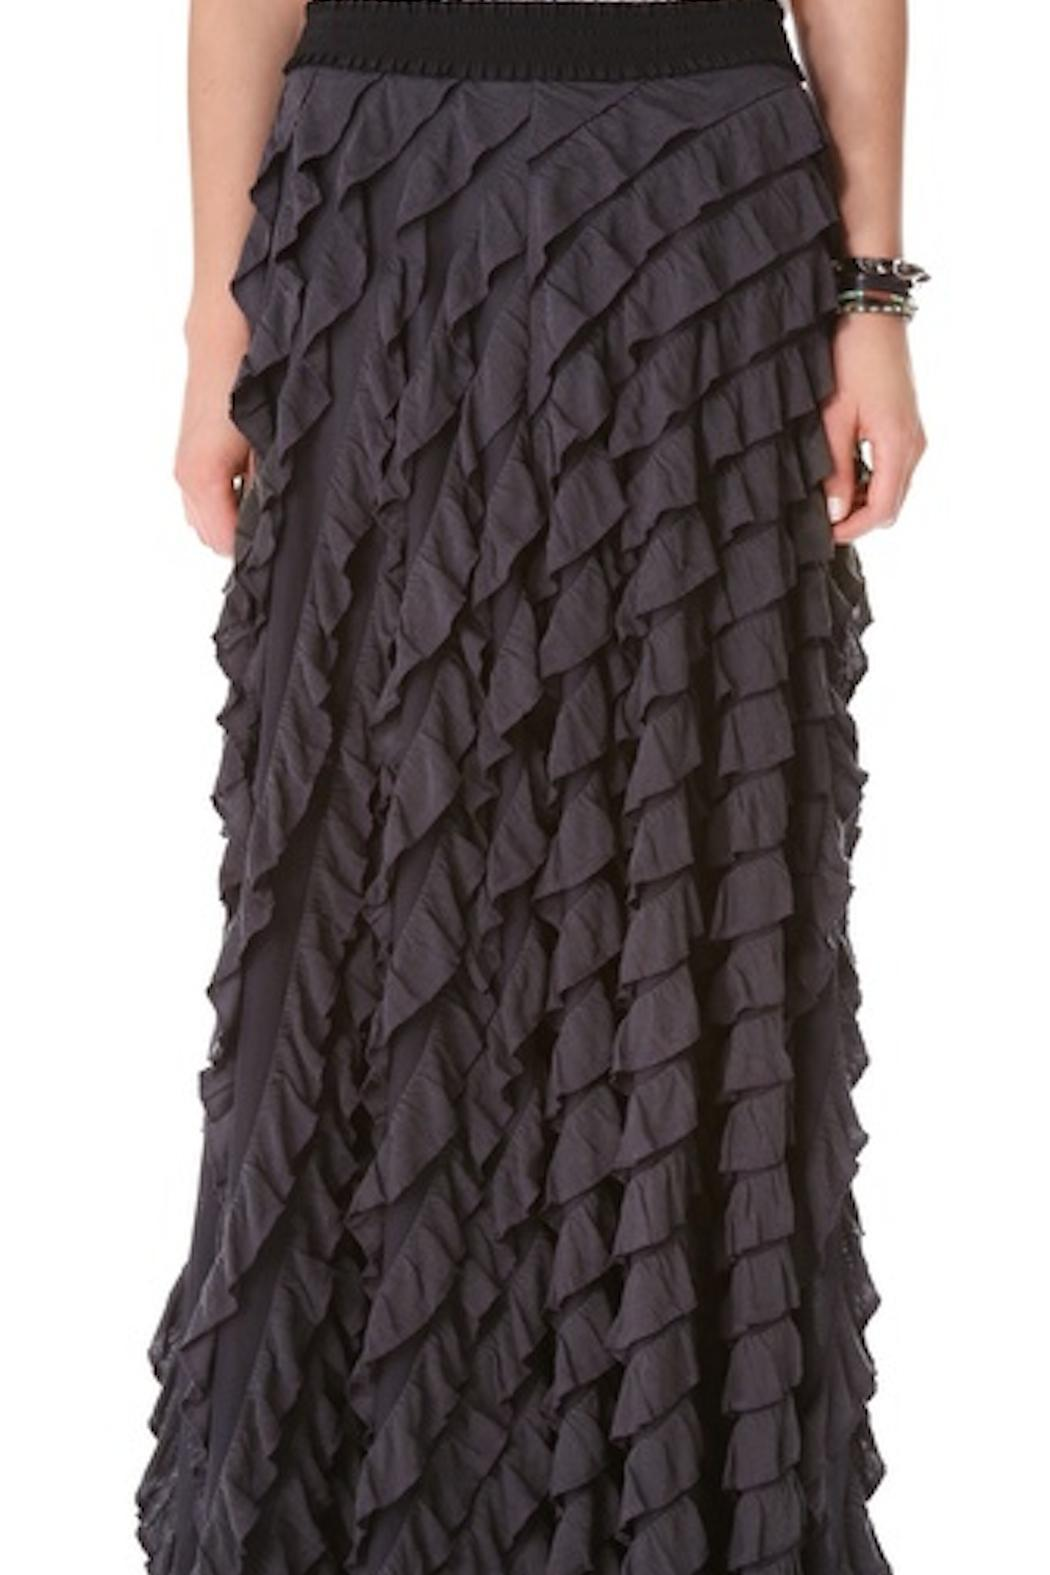 Free people lydia maxi skirt from new jersey by scout for Free people store decor